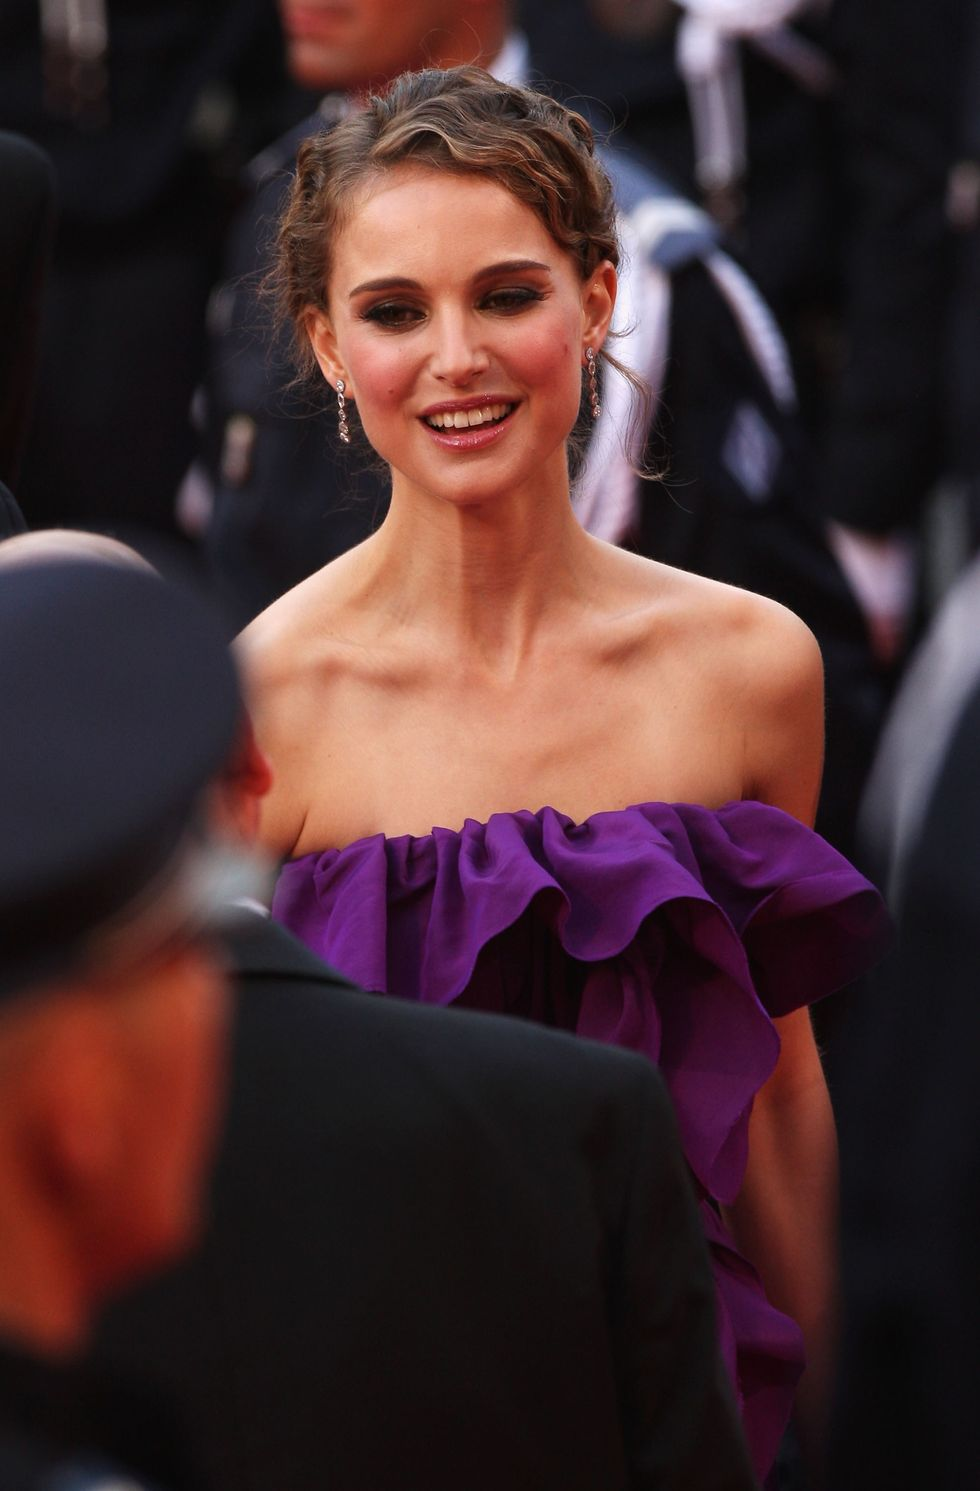 natalie-portman-61st-cannes-film-festival-opening-ceremony-01